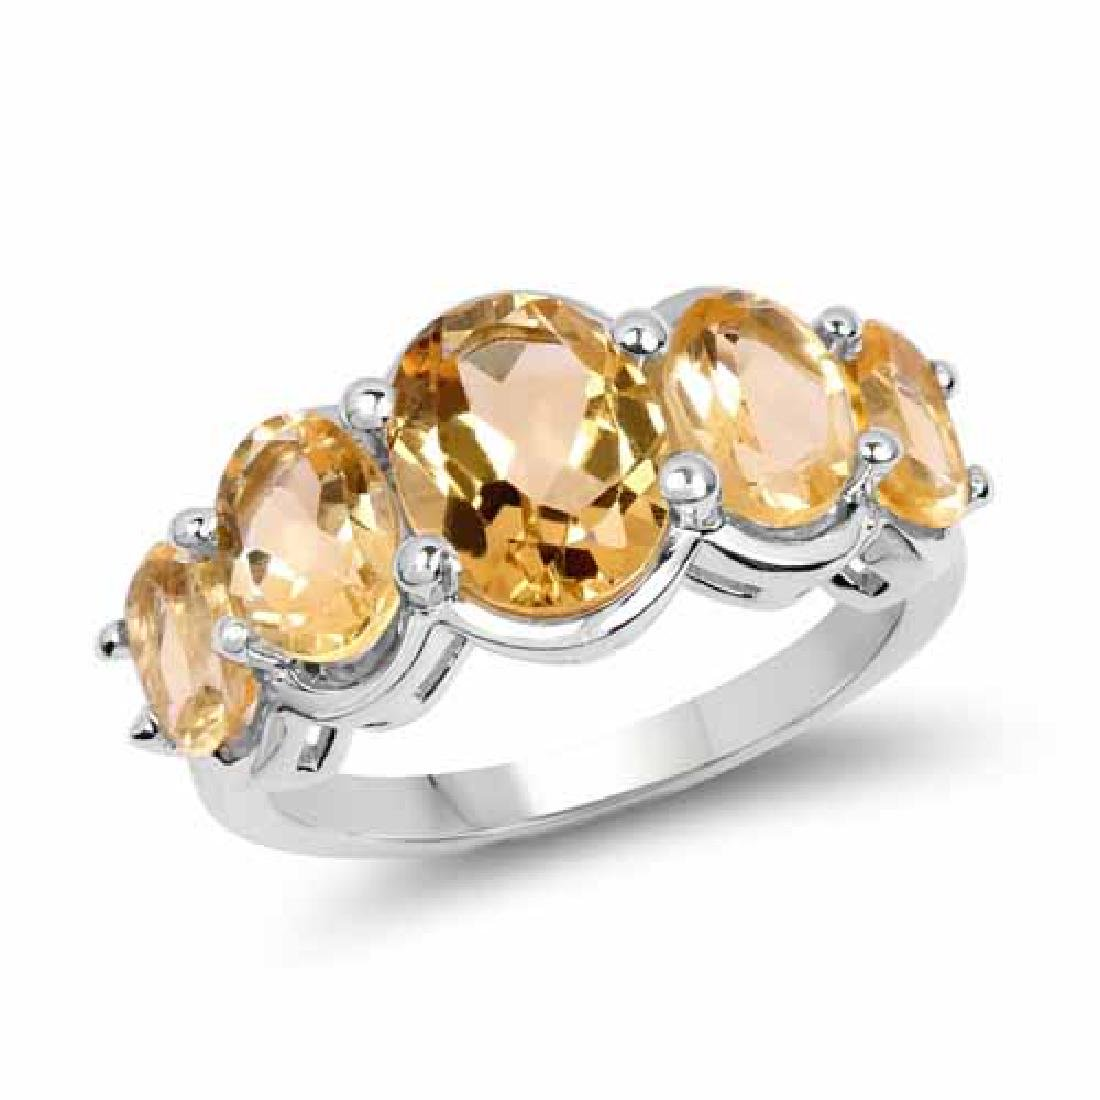 4.26 Carat Genuine Citrine .925 Sterling Silver Ring